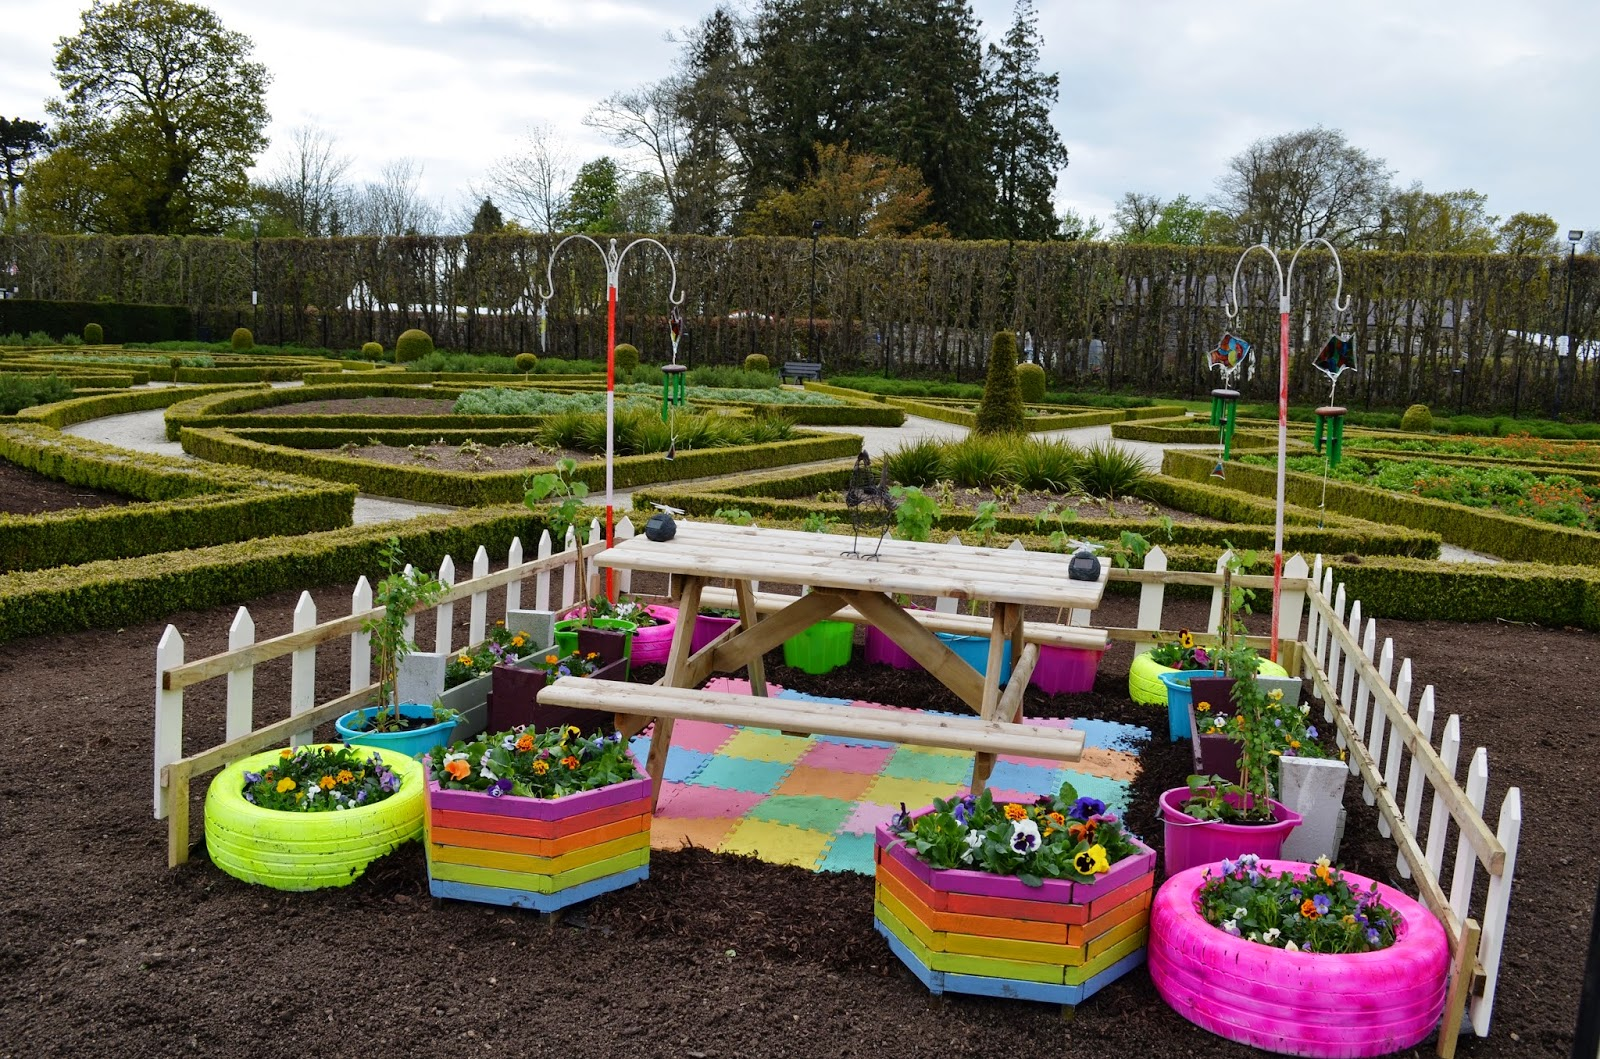 marvellous whether youre looking for family fun events folk music sessions or concerning inspiration article - Garden Design Northern Ireland